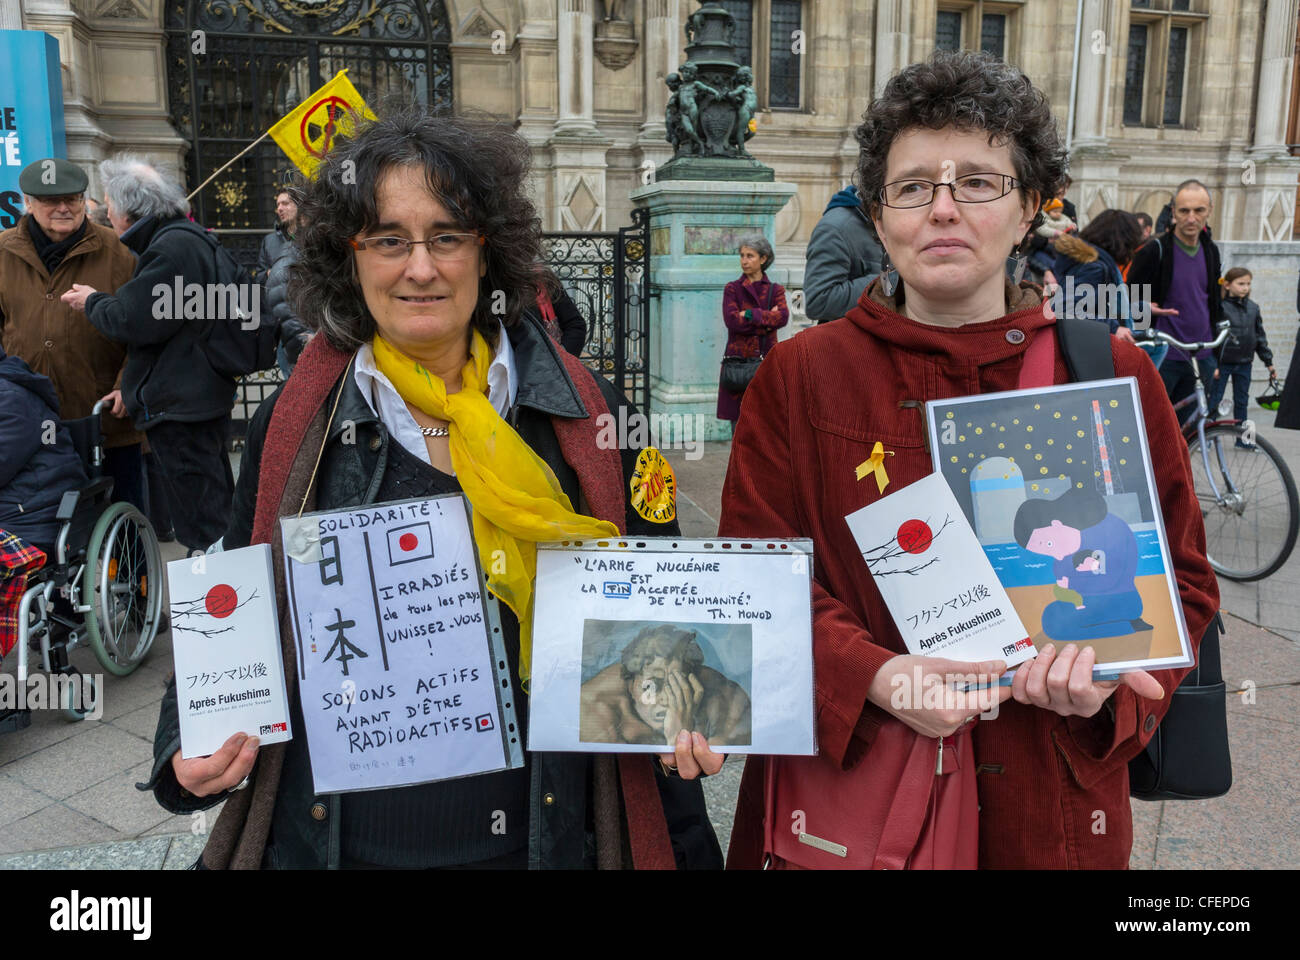 Paris, France, Anti Nuclear Power Activists Demonstrating on Anniversary of Fukushima Disaster, Women Holding signs, - Stock Image